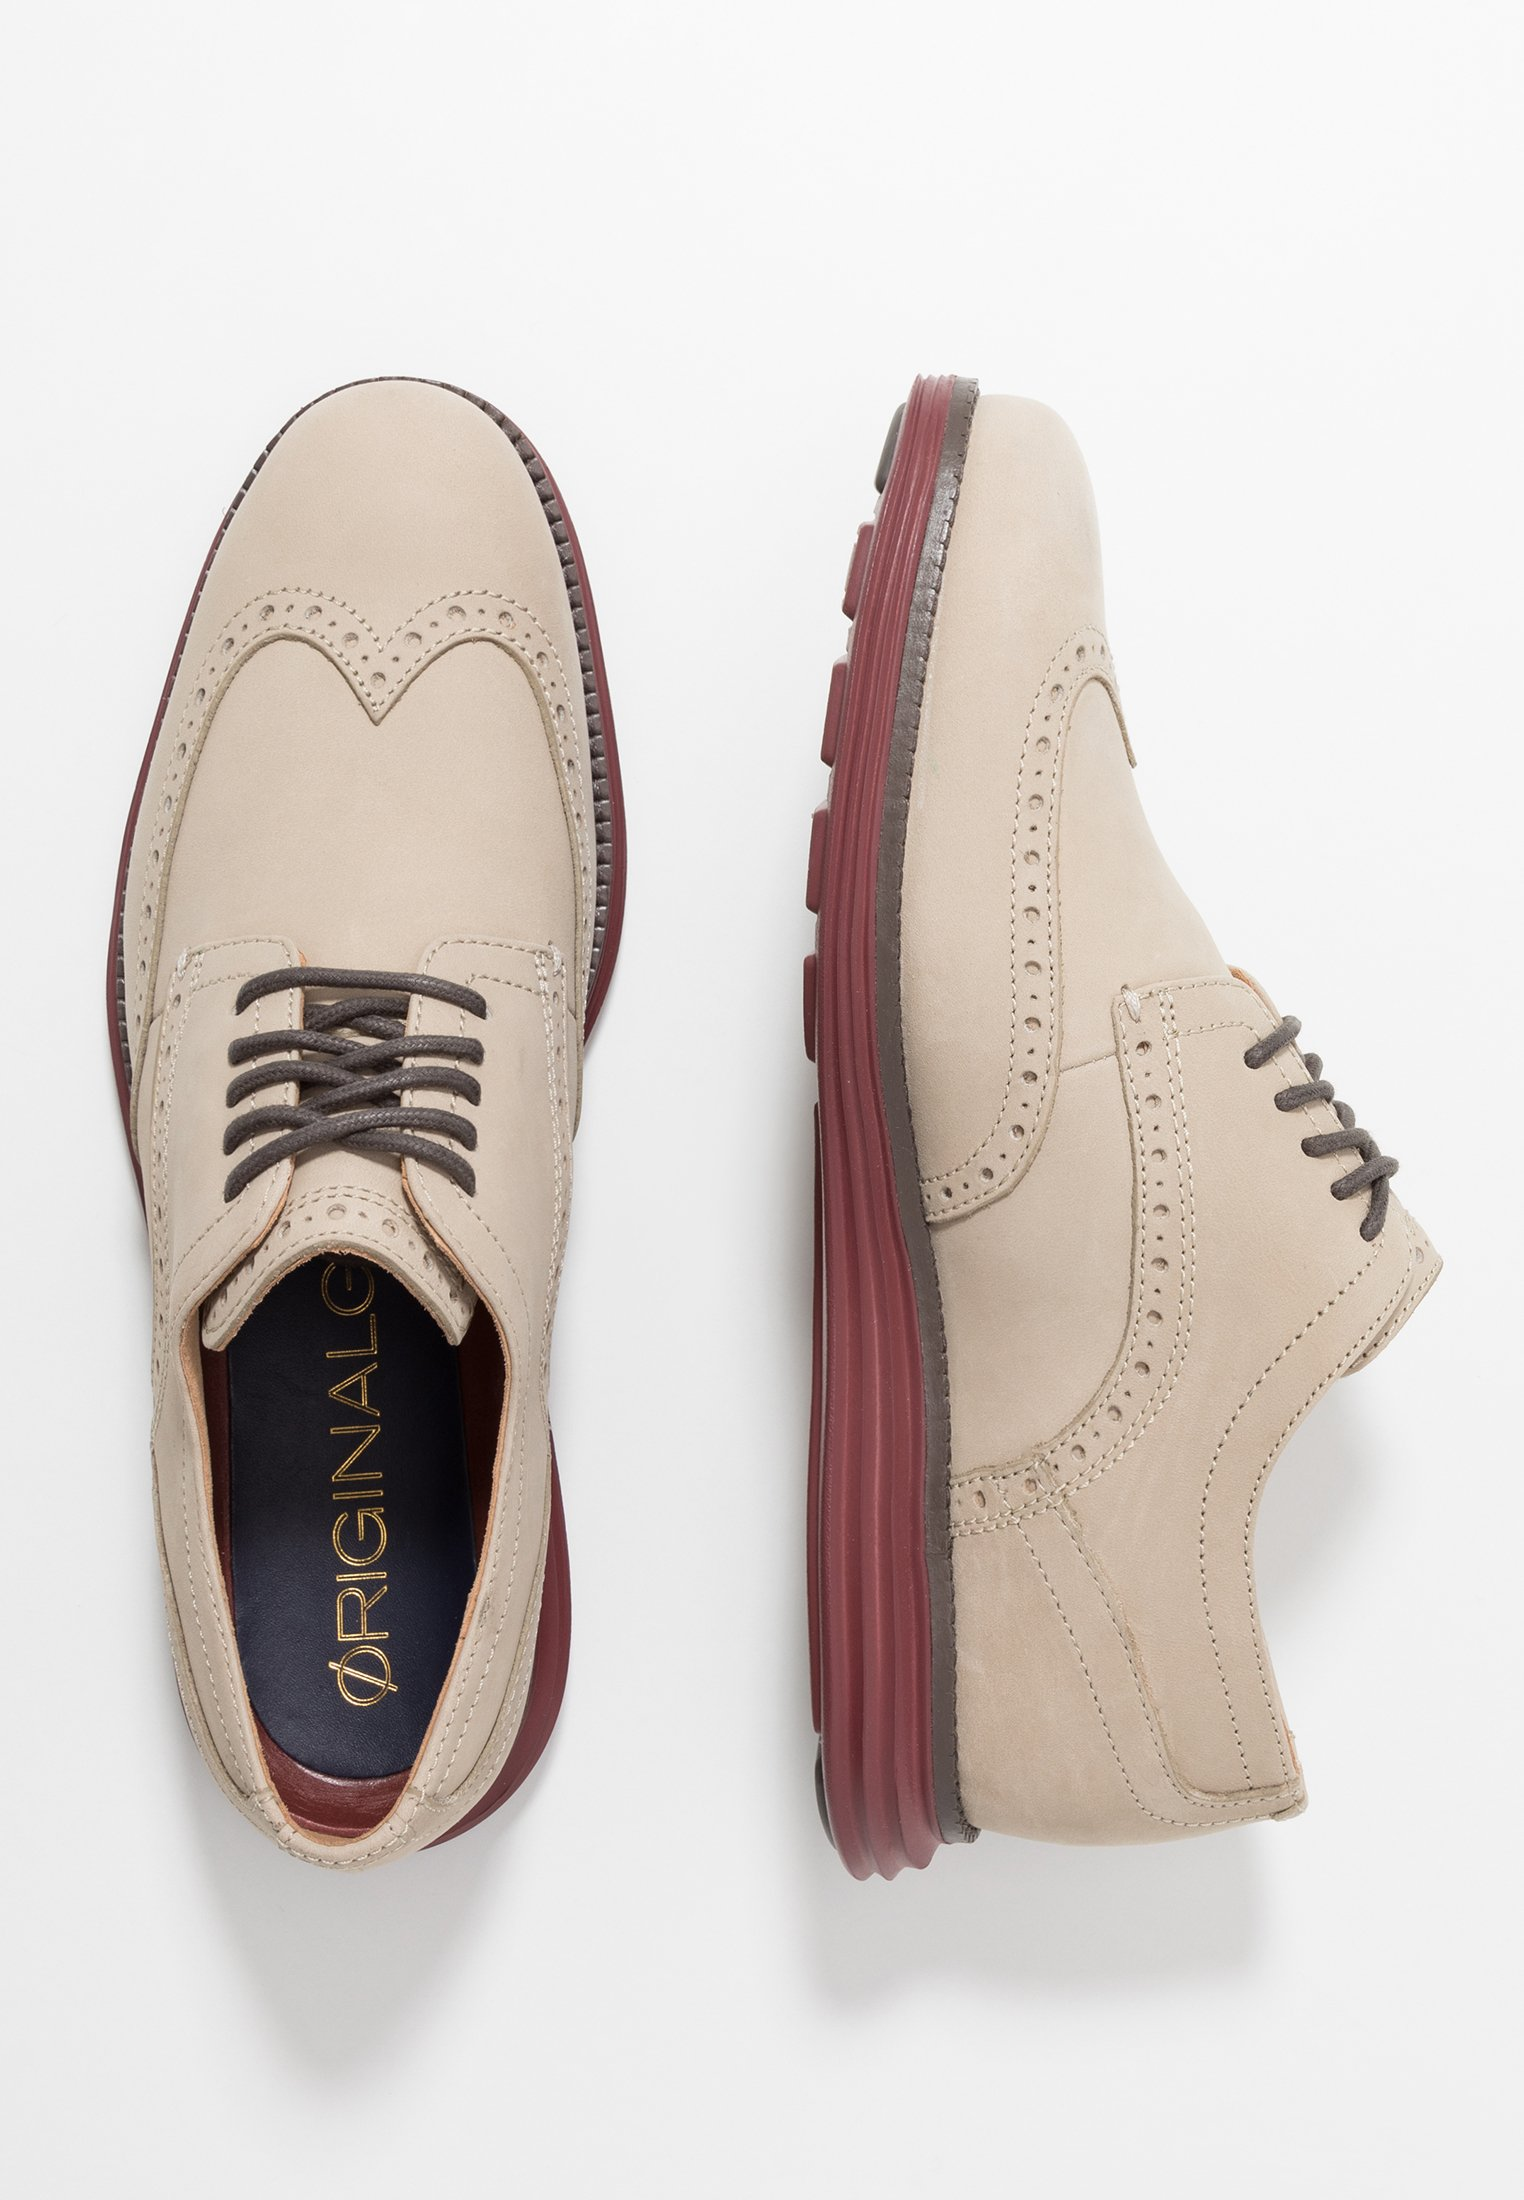 ORIGINAL GRAND WINGTIP OXFORD Sportiga snörskor hawthornfired brick